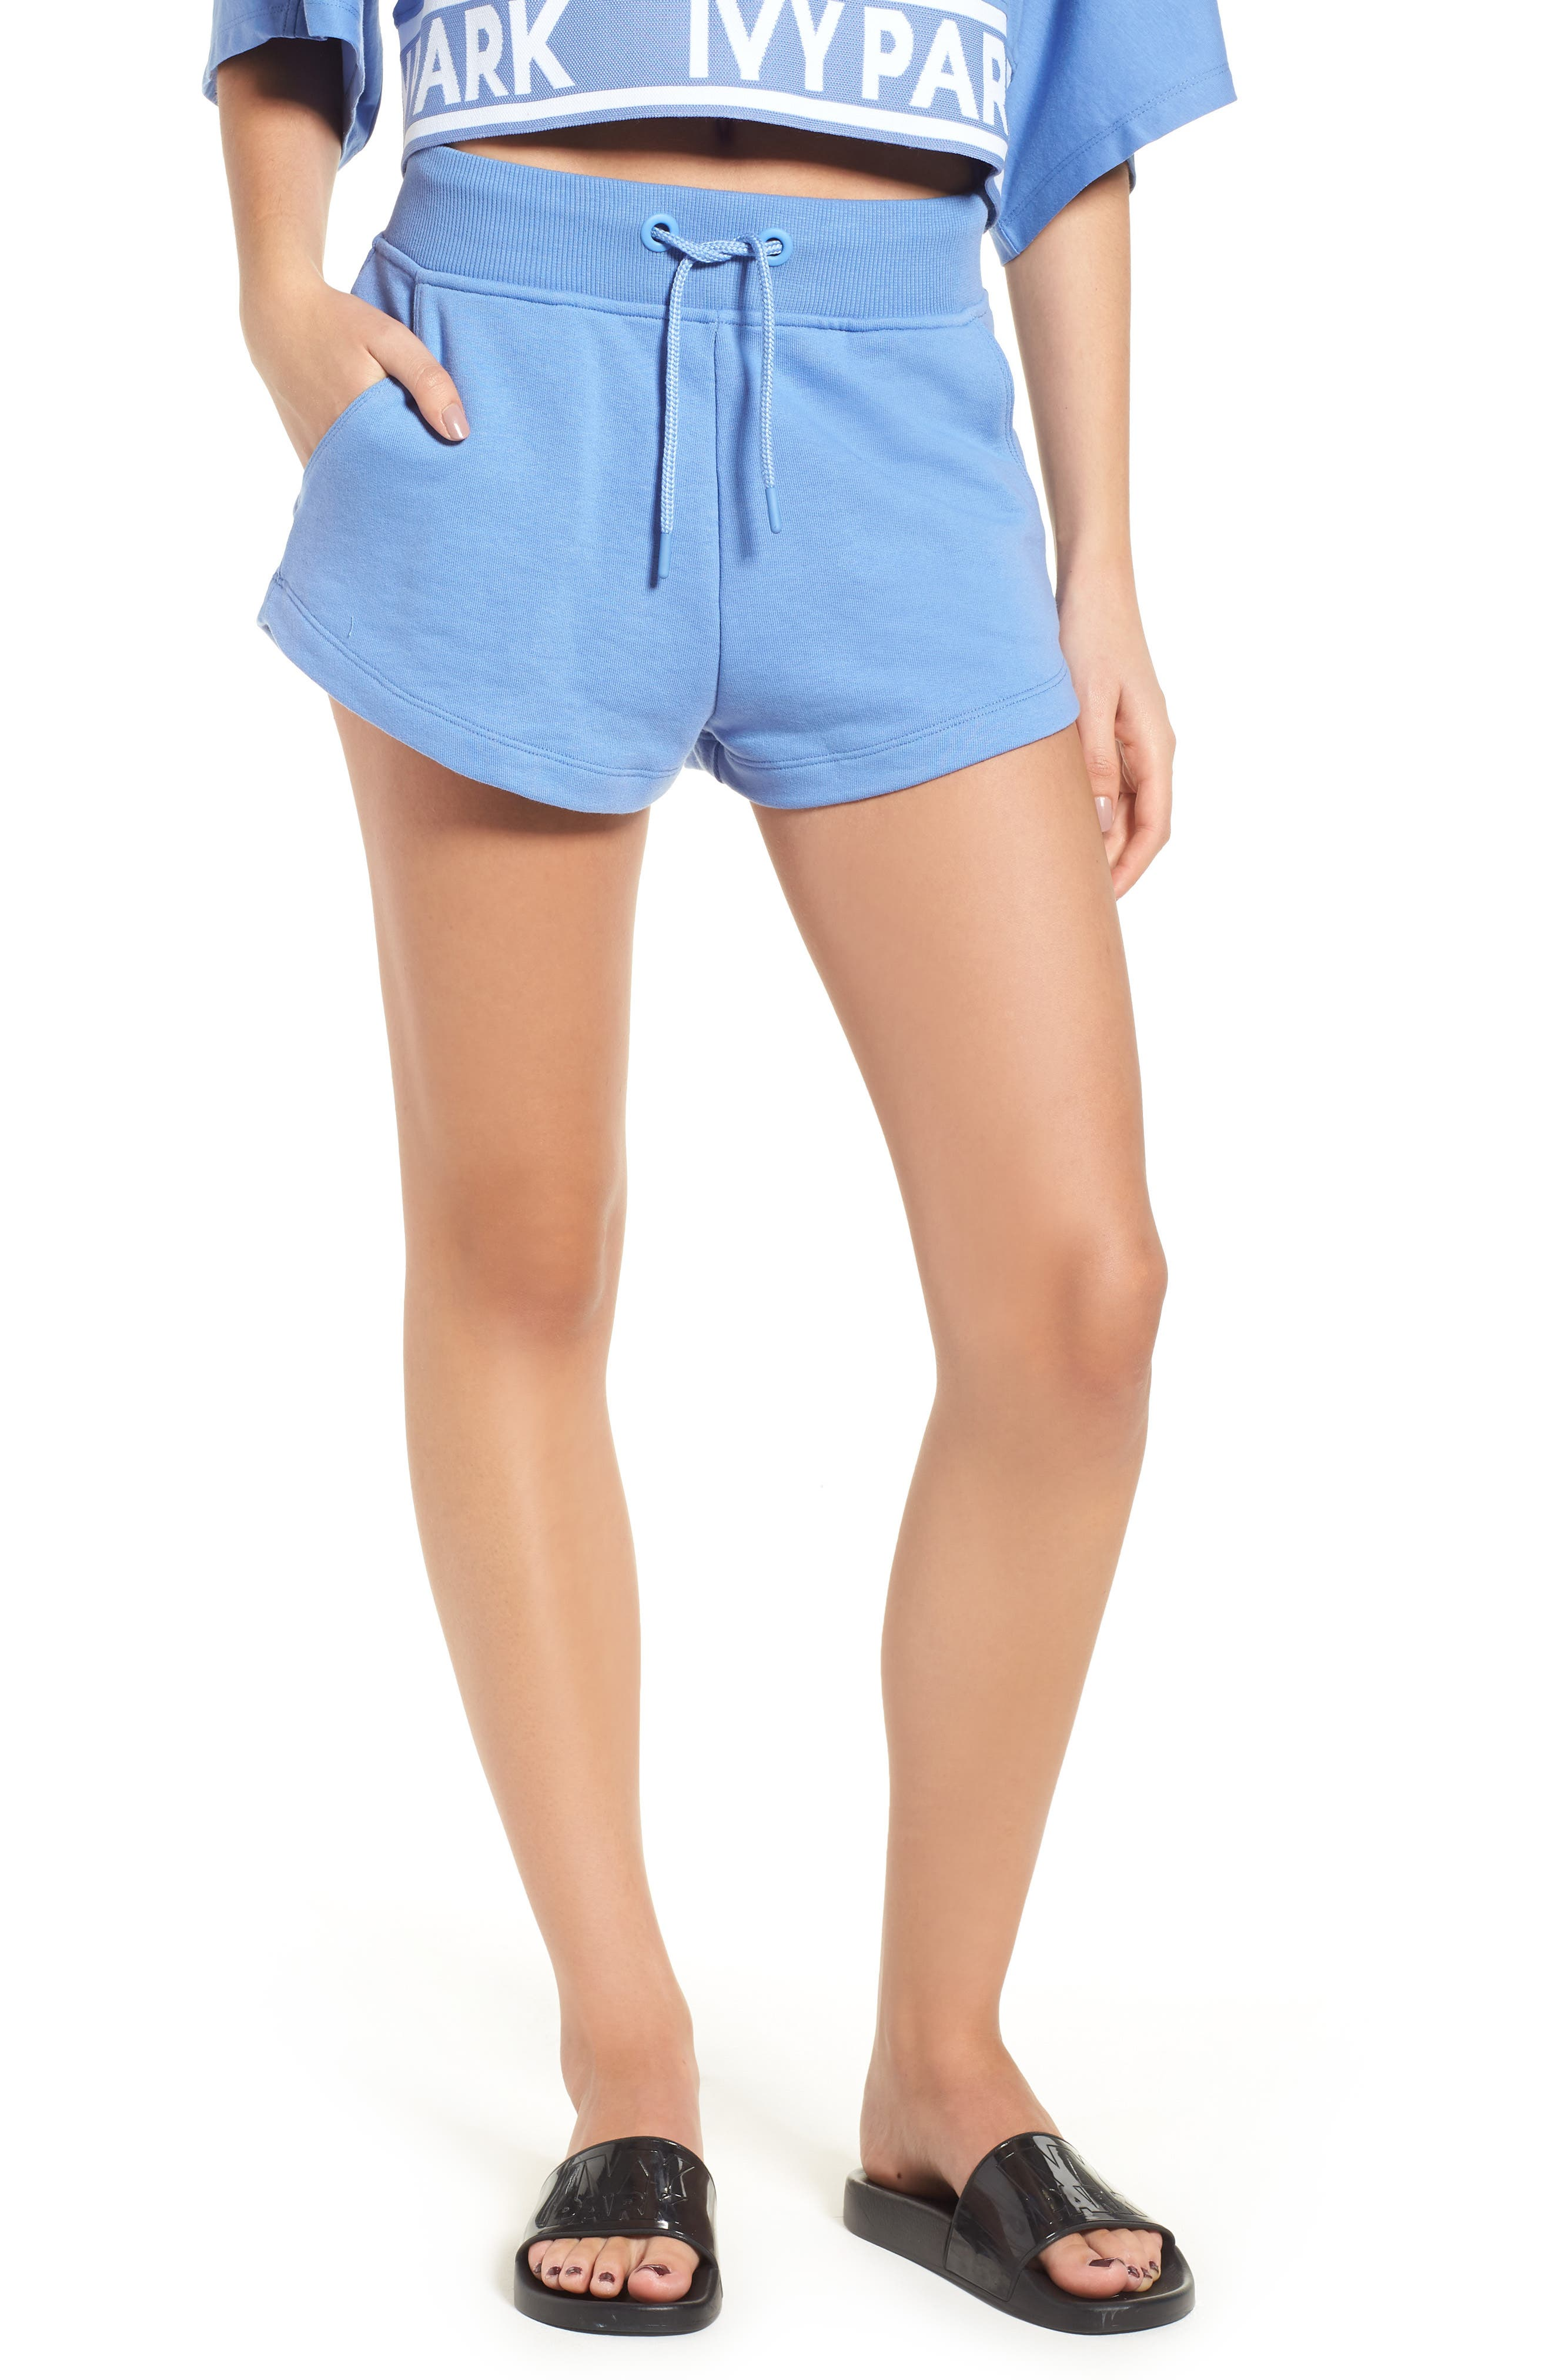 Ivy Park Womens Logo Shorts - With Credit Card Sale Online Largest Supplier Cheap Price Countdown Package Discount Manchester Great Sale a6mxDE